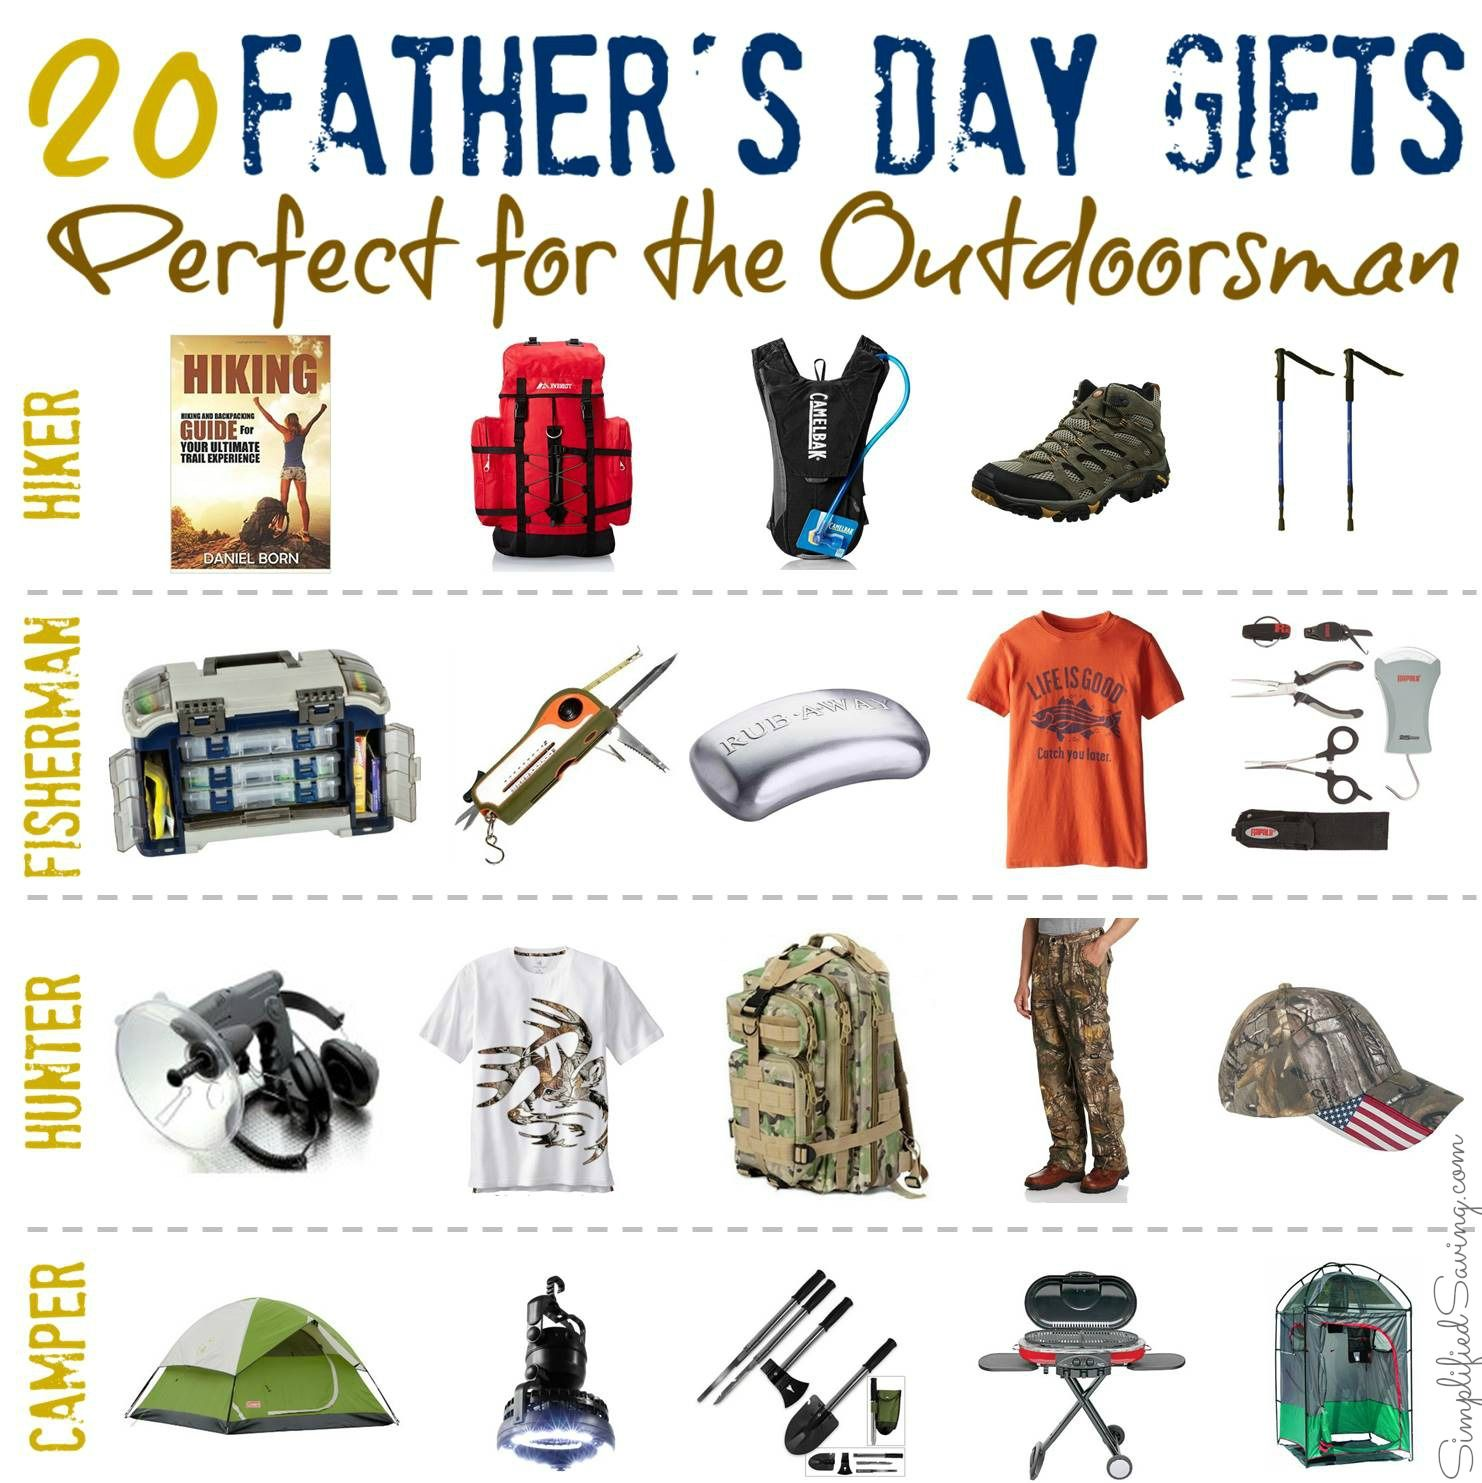 Good Christmas Gift Ideas For Outdoorsmen Part - 2: Fatheru0027s Day Gifts For Outdoorsmen From SimplifiedSaving.com